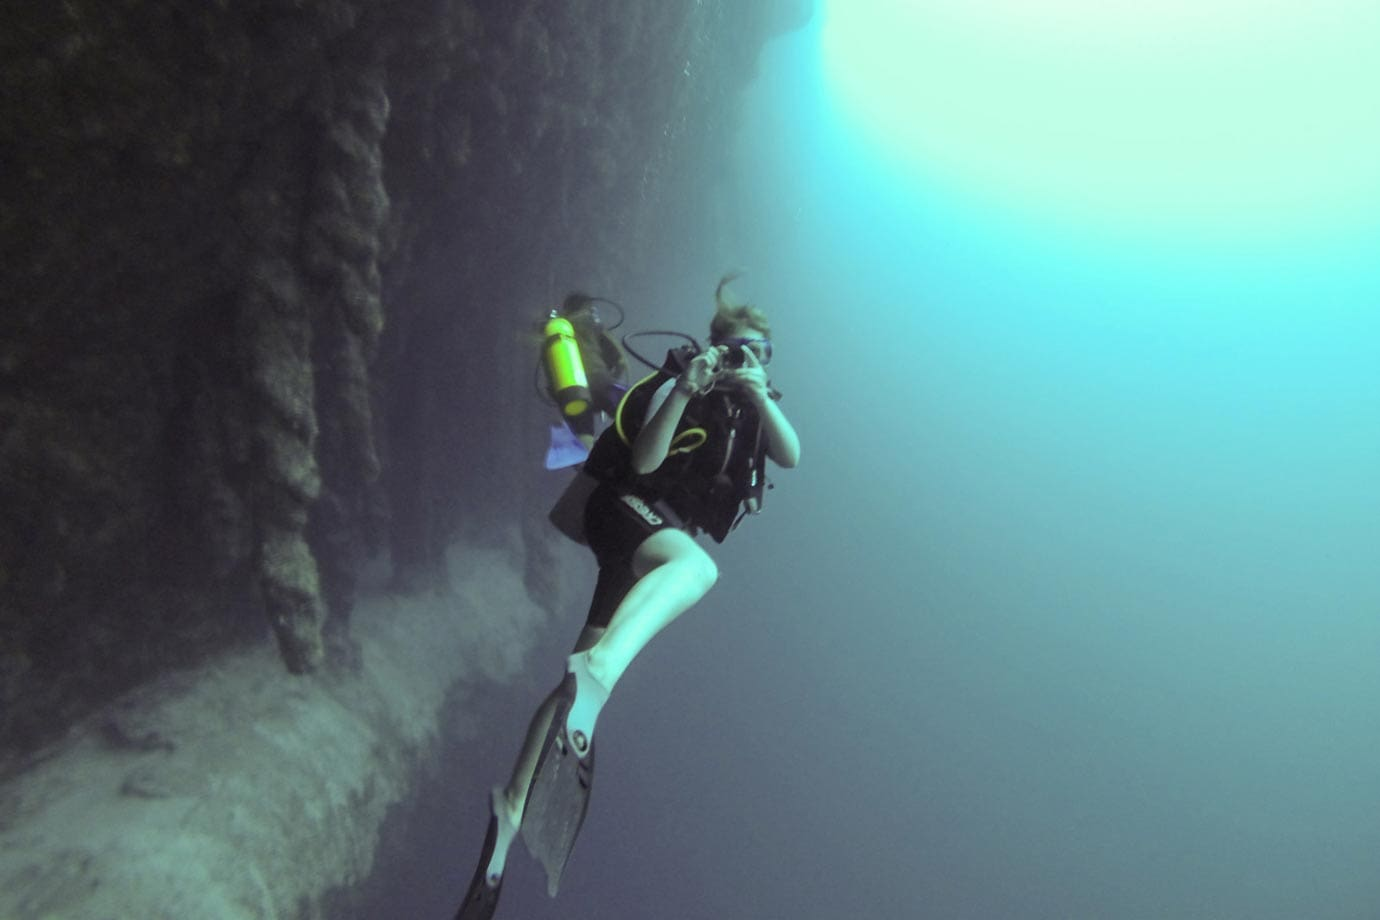 Where else in the world can you swim in and out of stalactites in murky blue water?